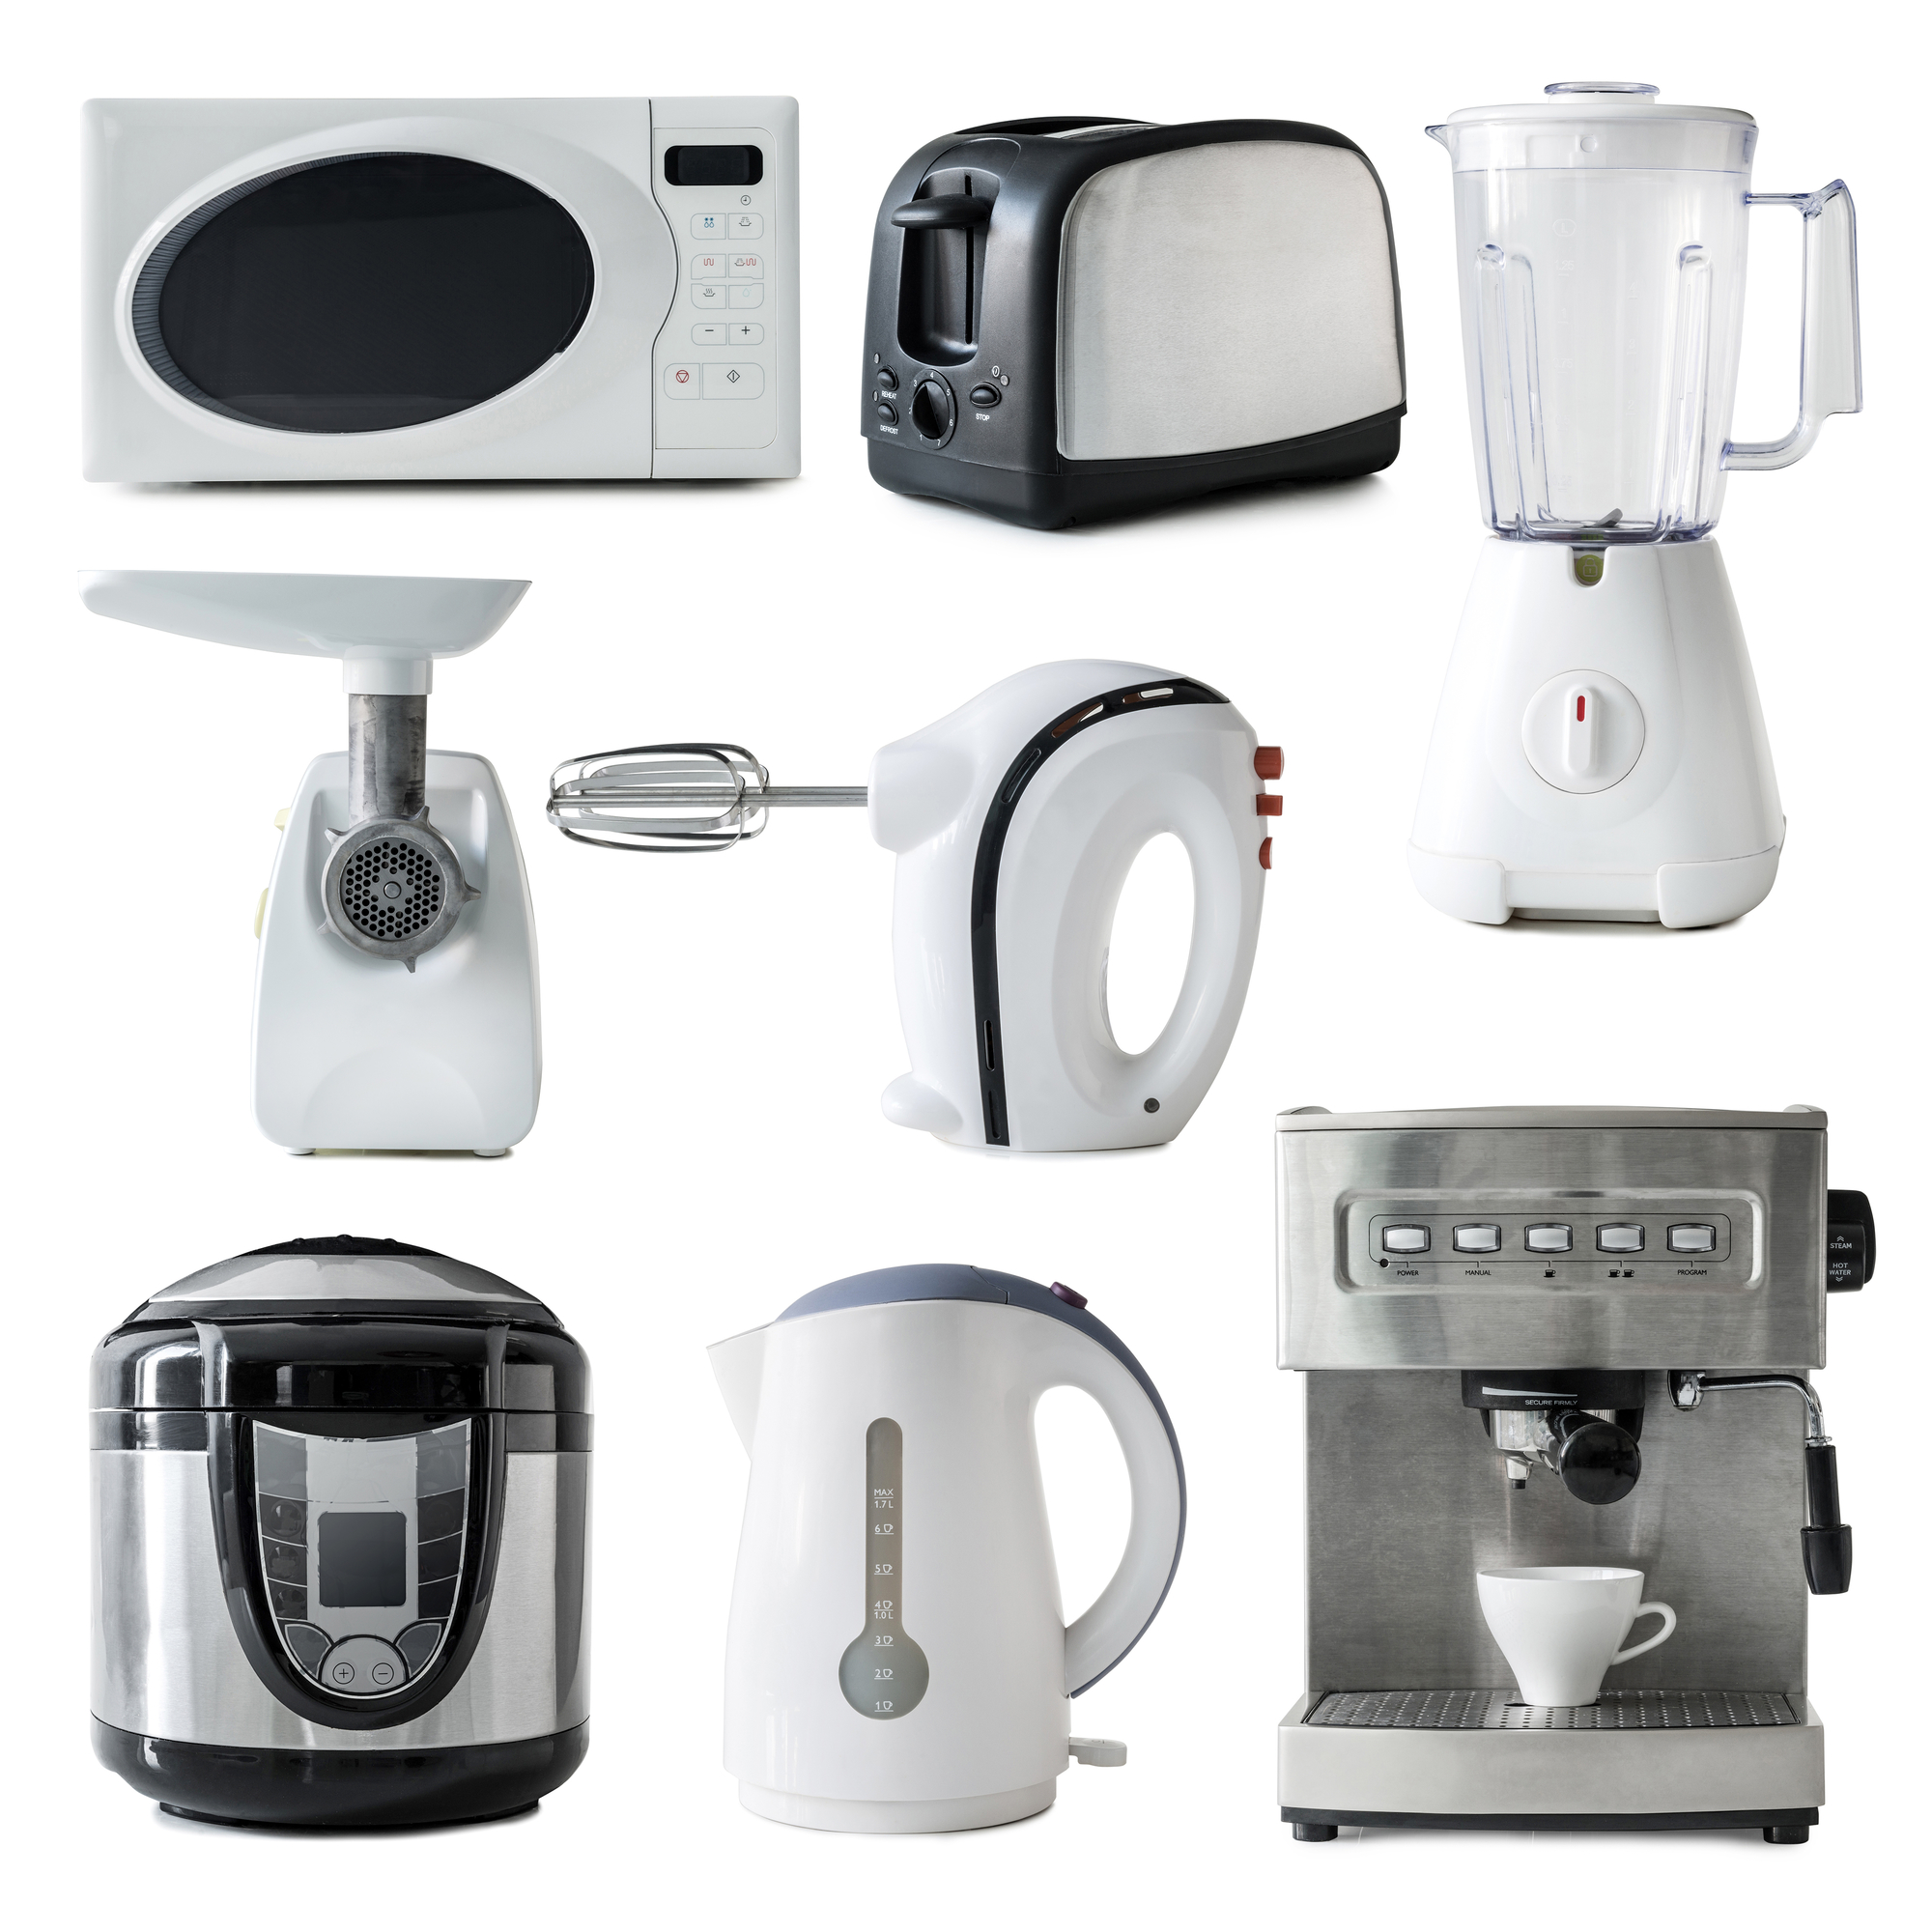 different types of kitchen appliances collage. Black Bedroom Furniture Sets. Home Design Ideas